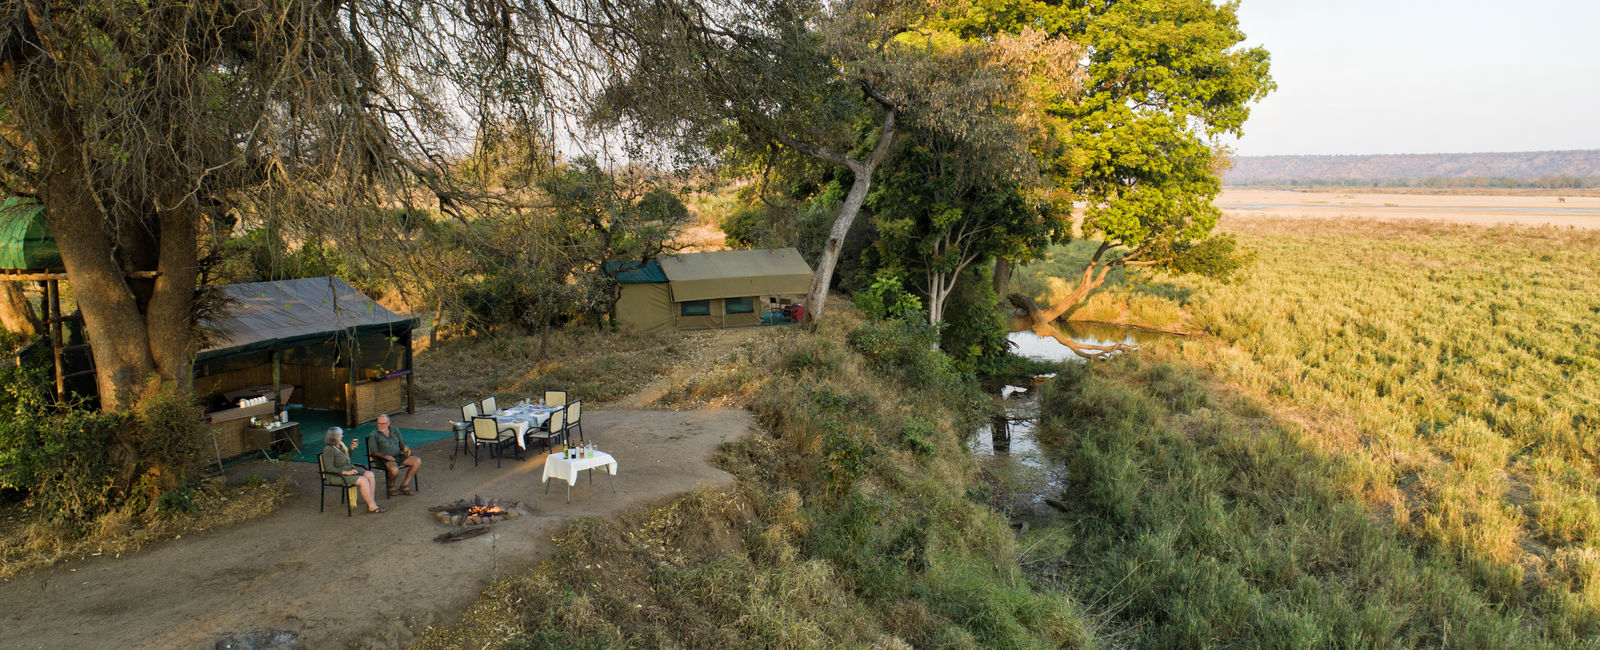 Chilo Gorge Tented Camp